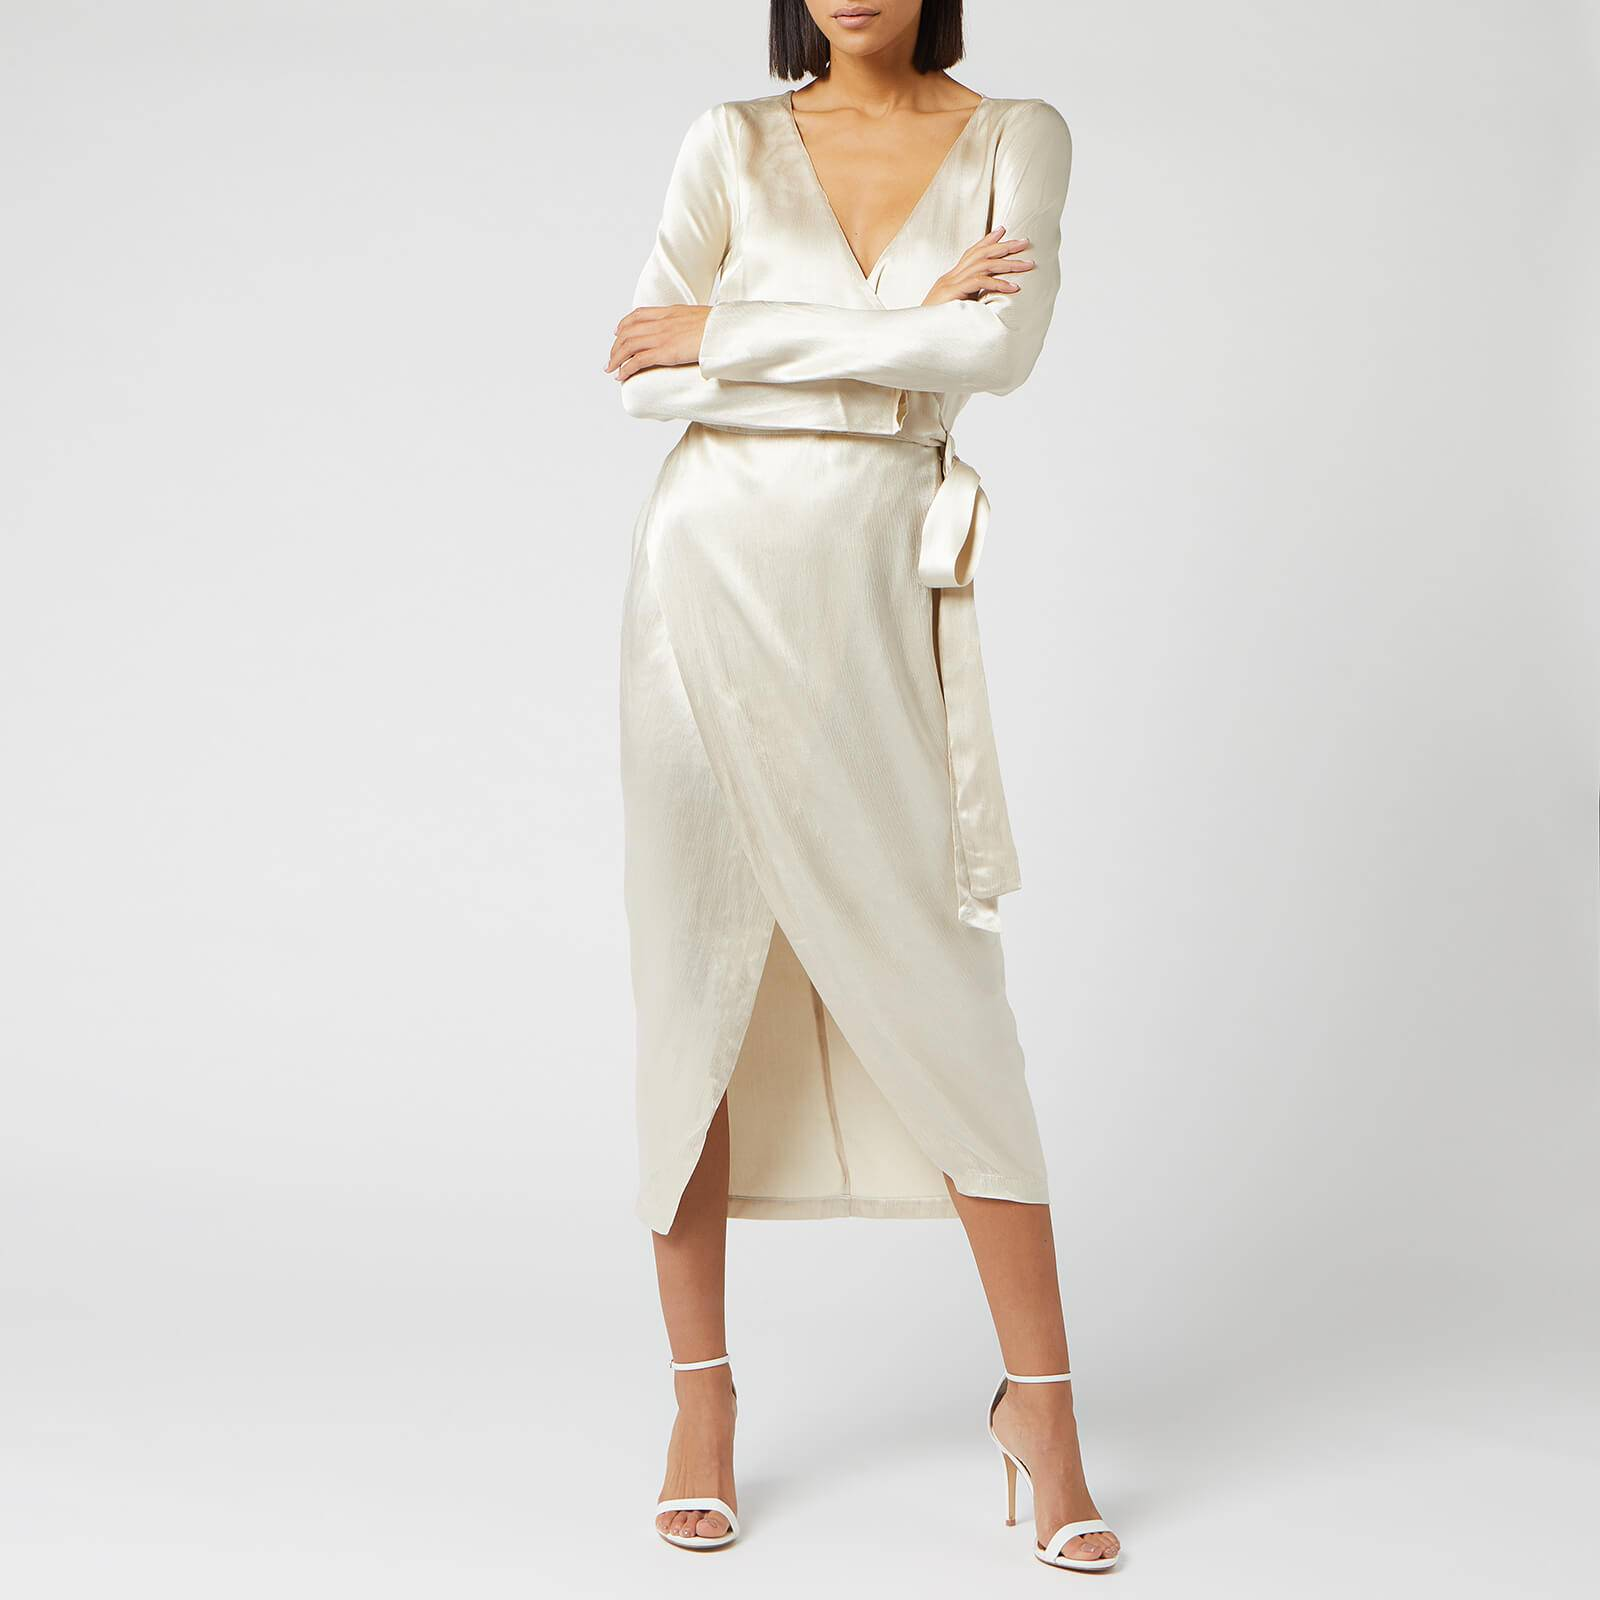 Bec & Bridge Women's Sylvie Wrap Midi Dress - Oyster - UK 10 - Cream